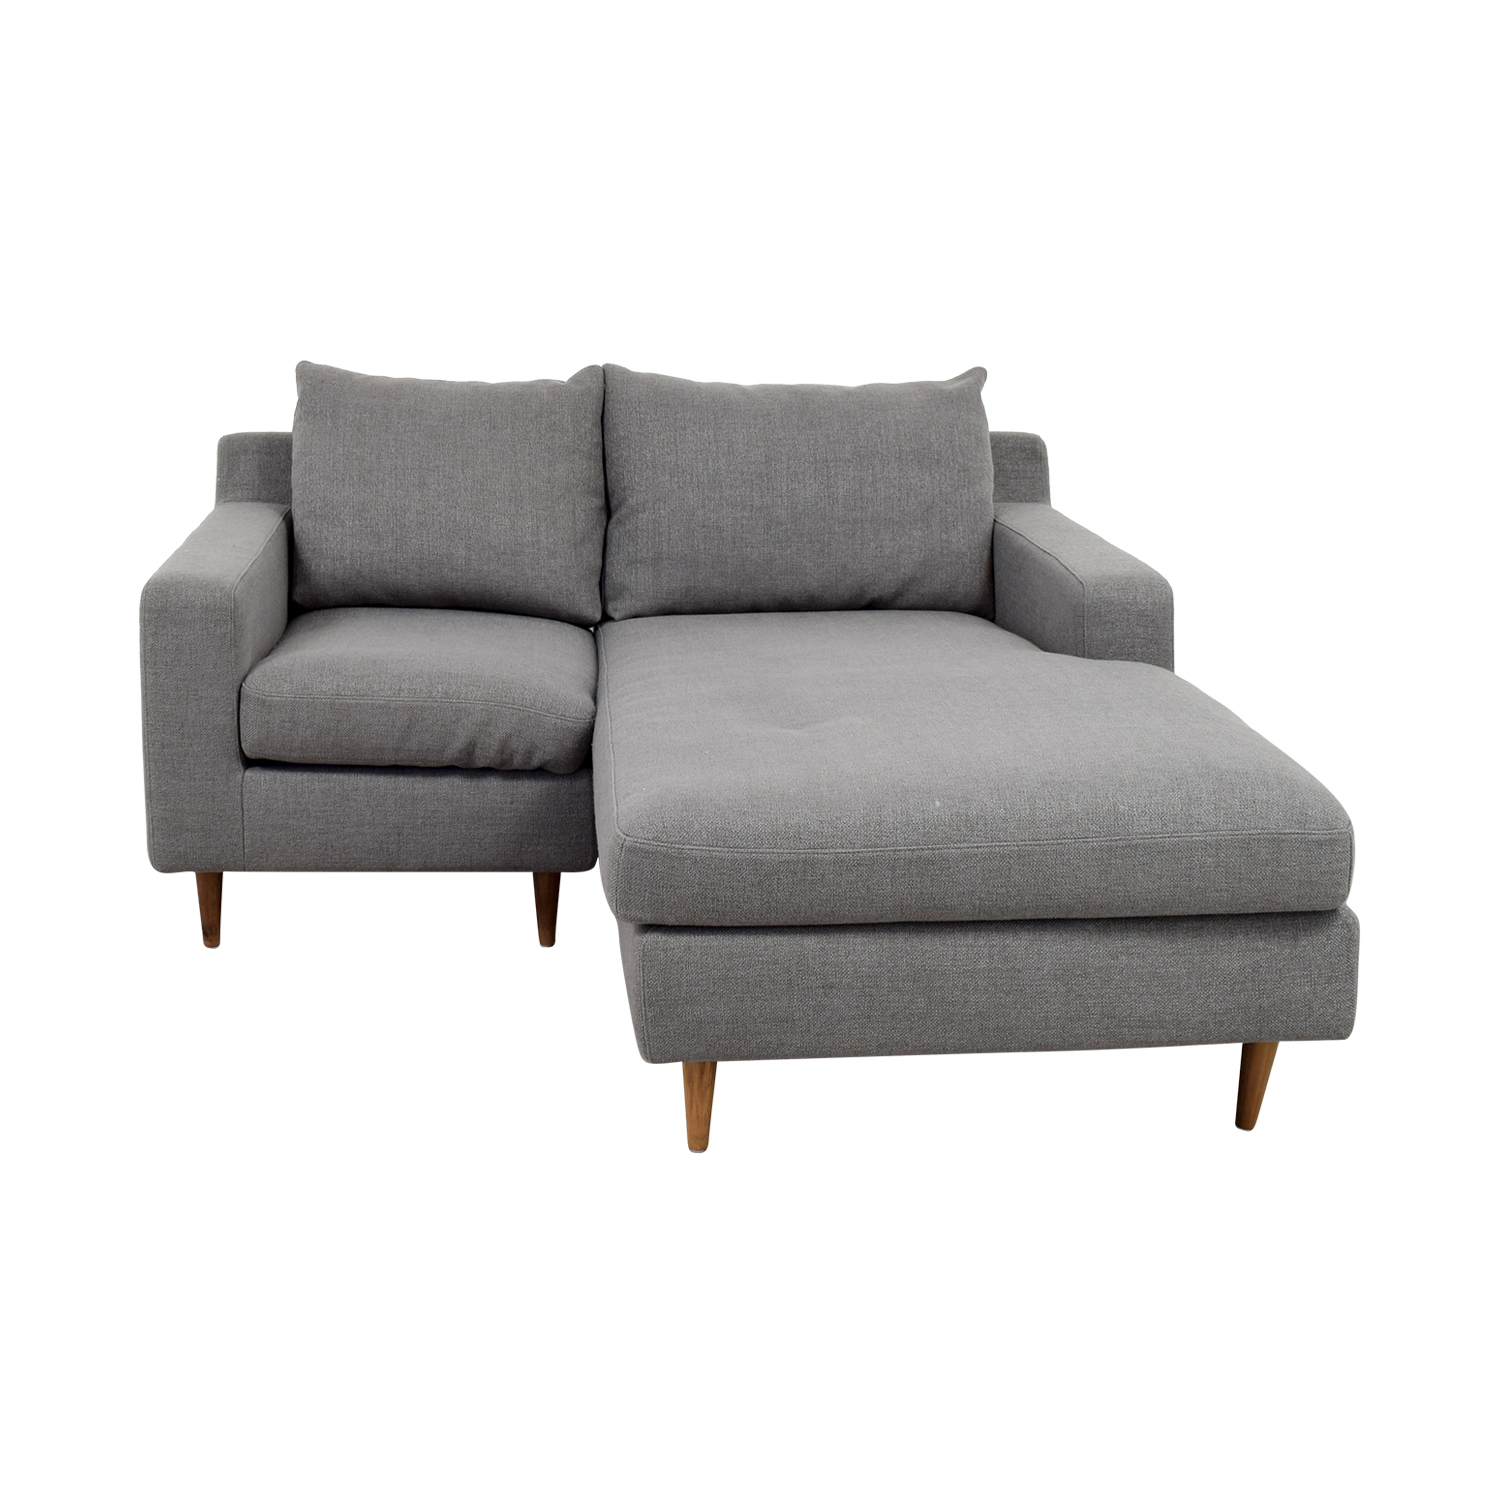 Order sofa online sofas couches loveseats for less thesofa for Used furniture online